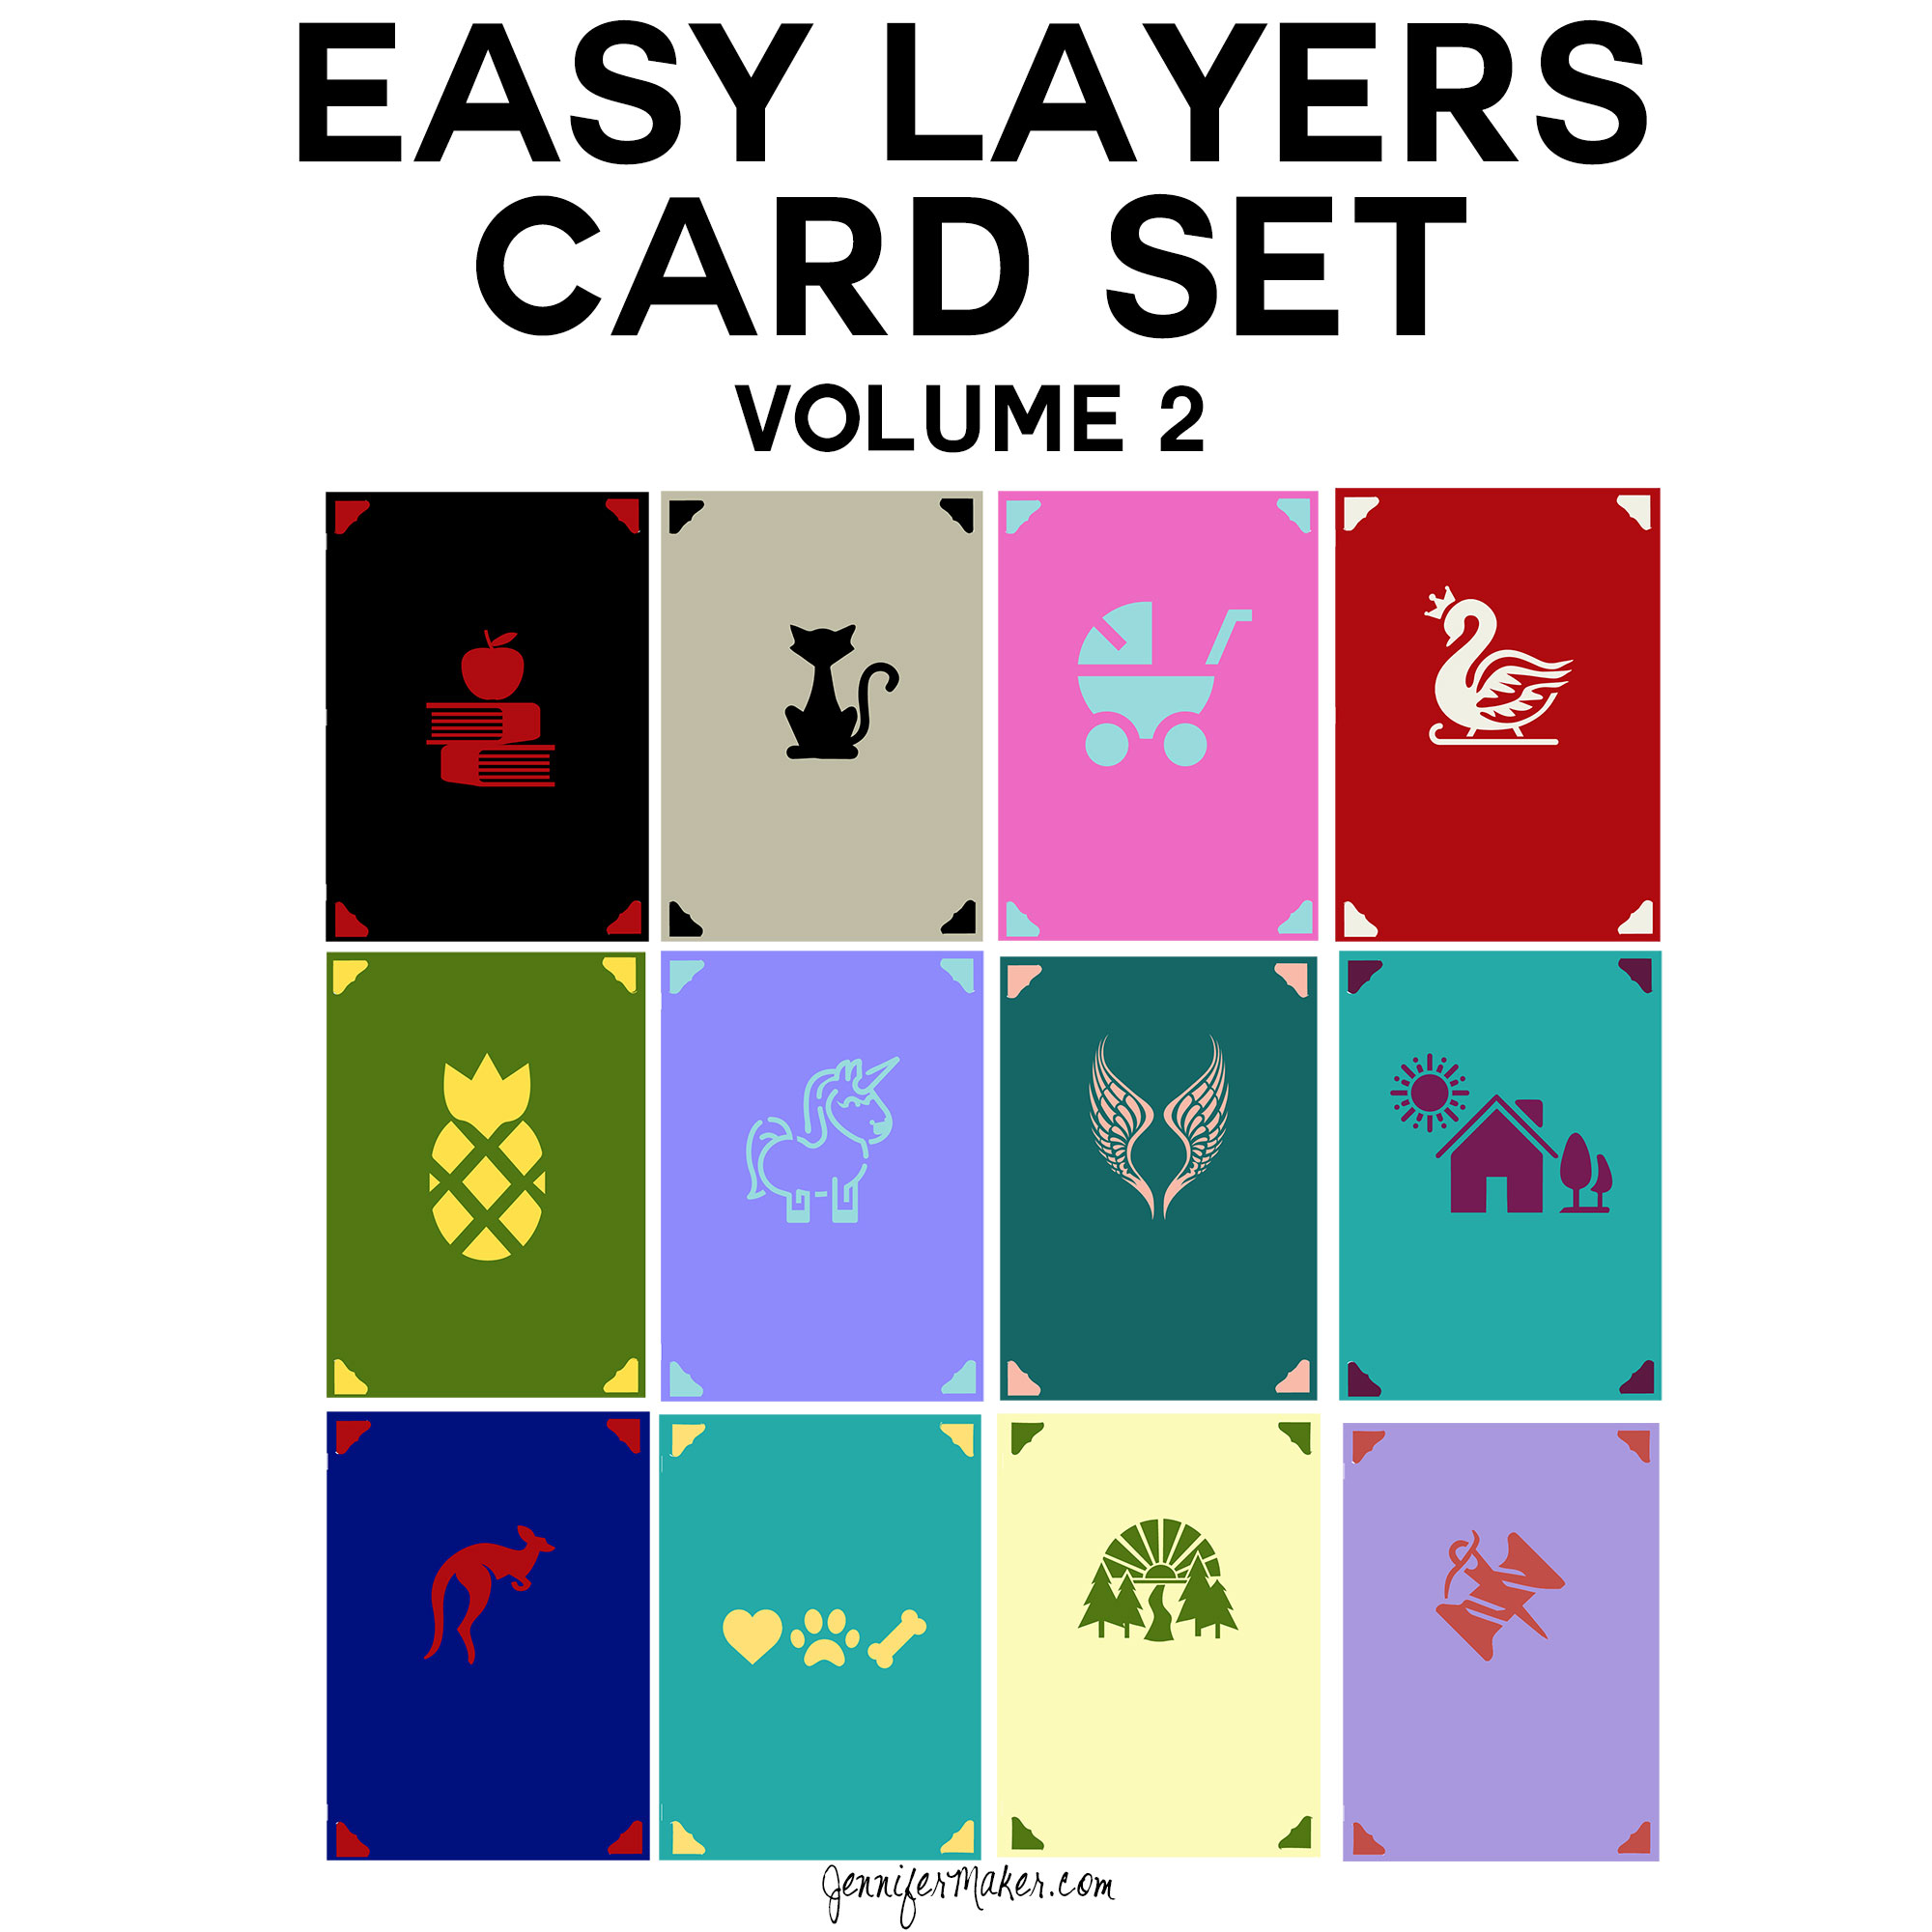 Easy Layers Card Set